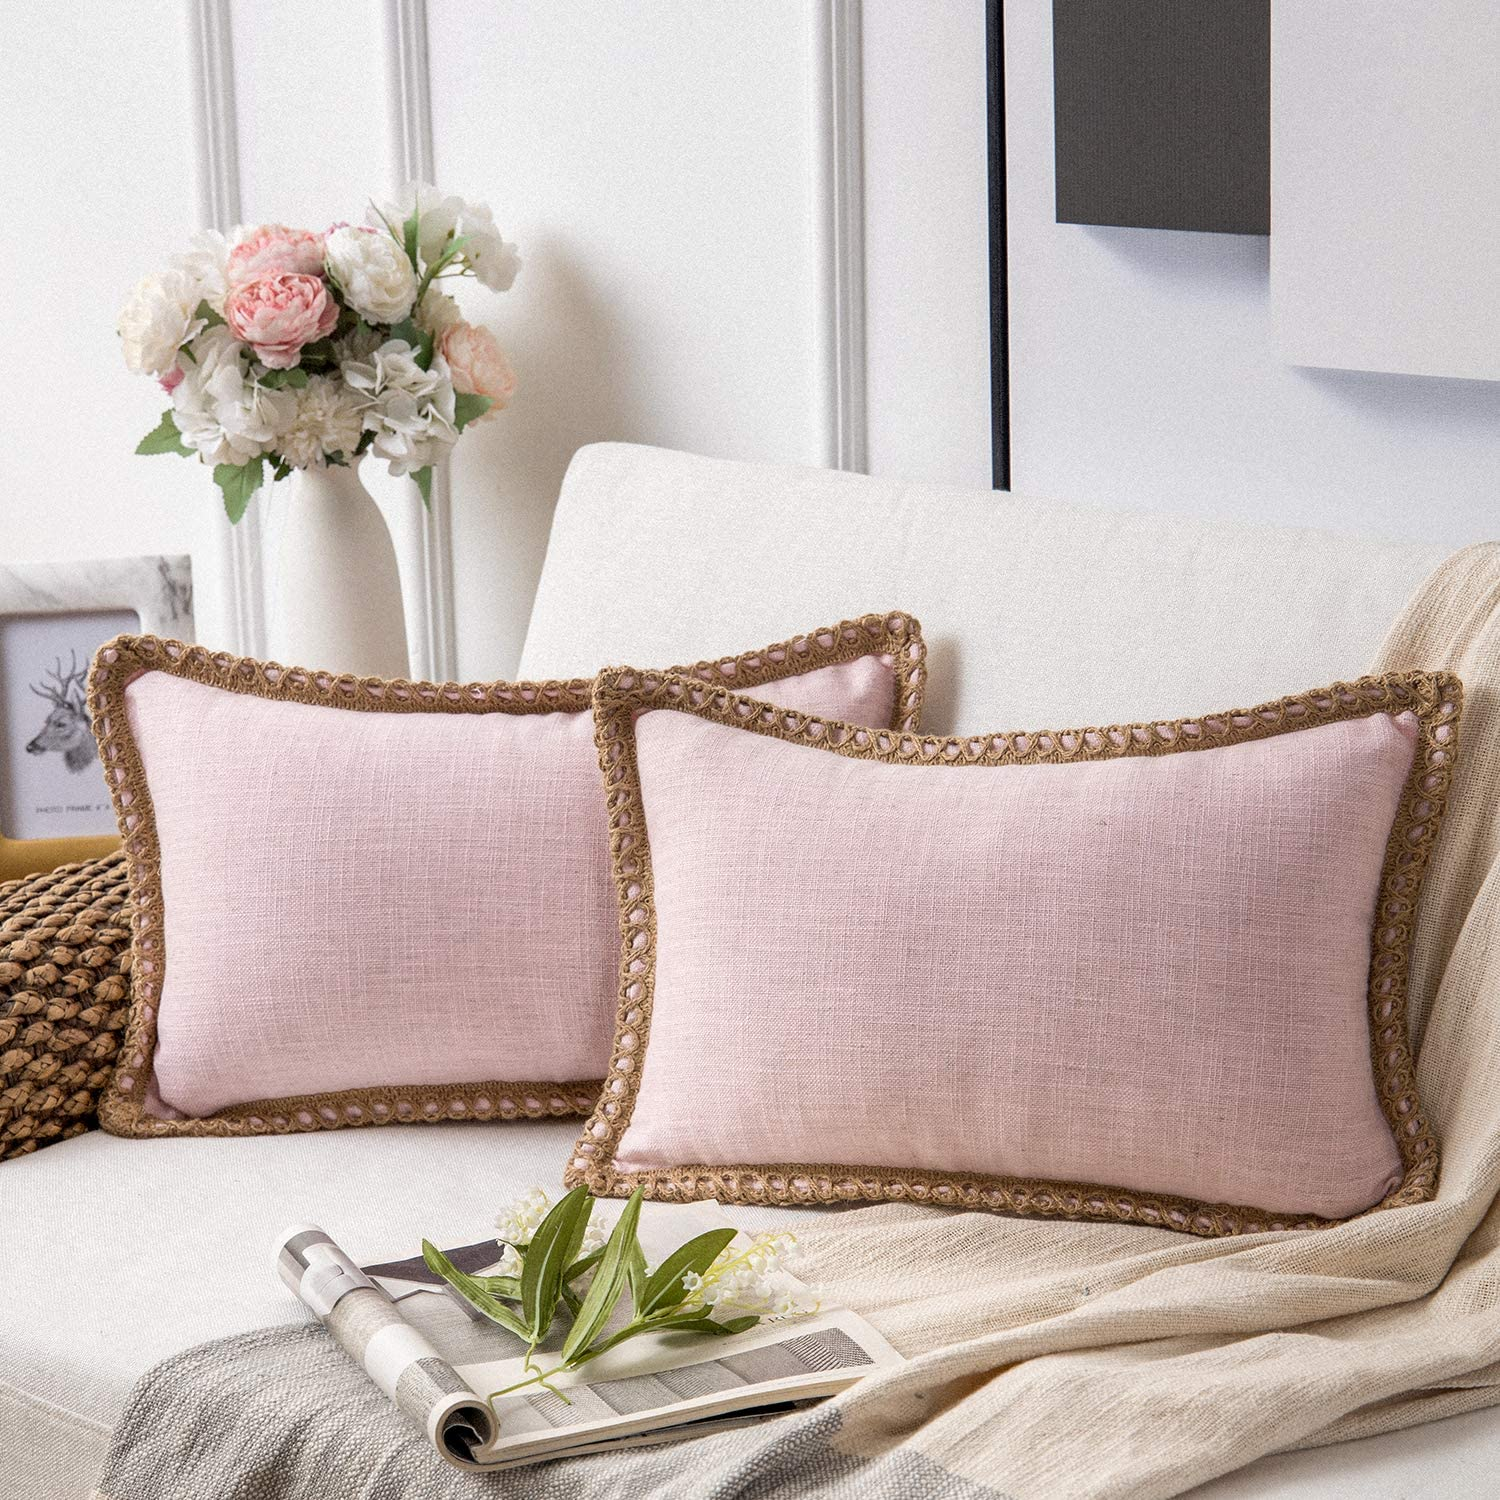 Phantoscope Pack of 2 Farmhouse Decorative Throw Pillow Covers Burlap Linen Trimmed Tailored Edges Light Pink 12 x 20 inches, 30 x 50 cm